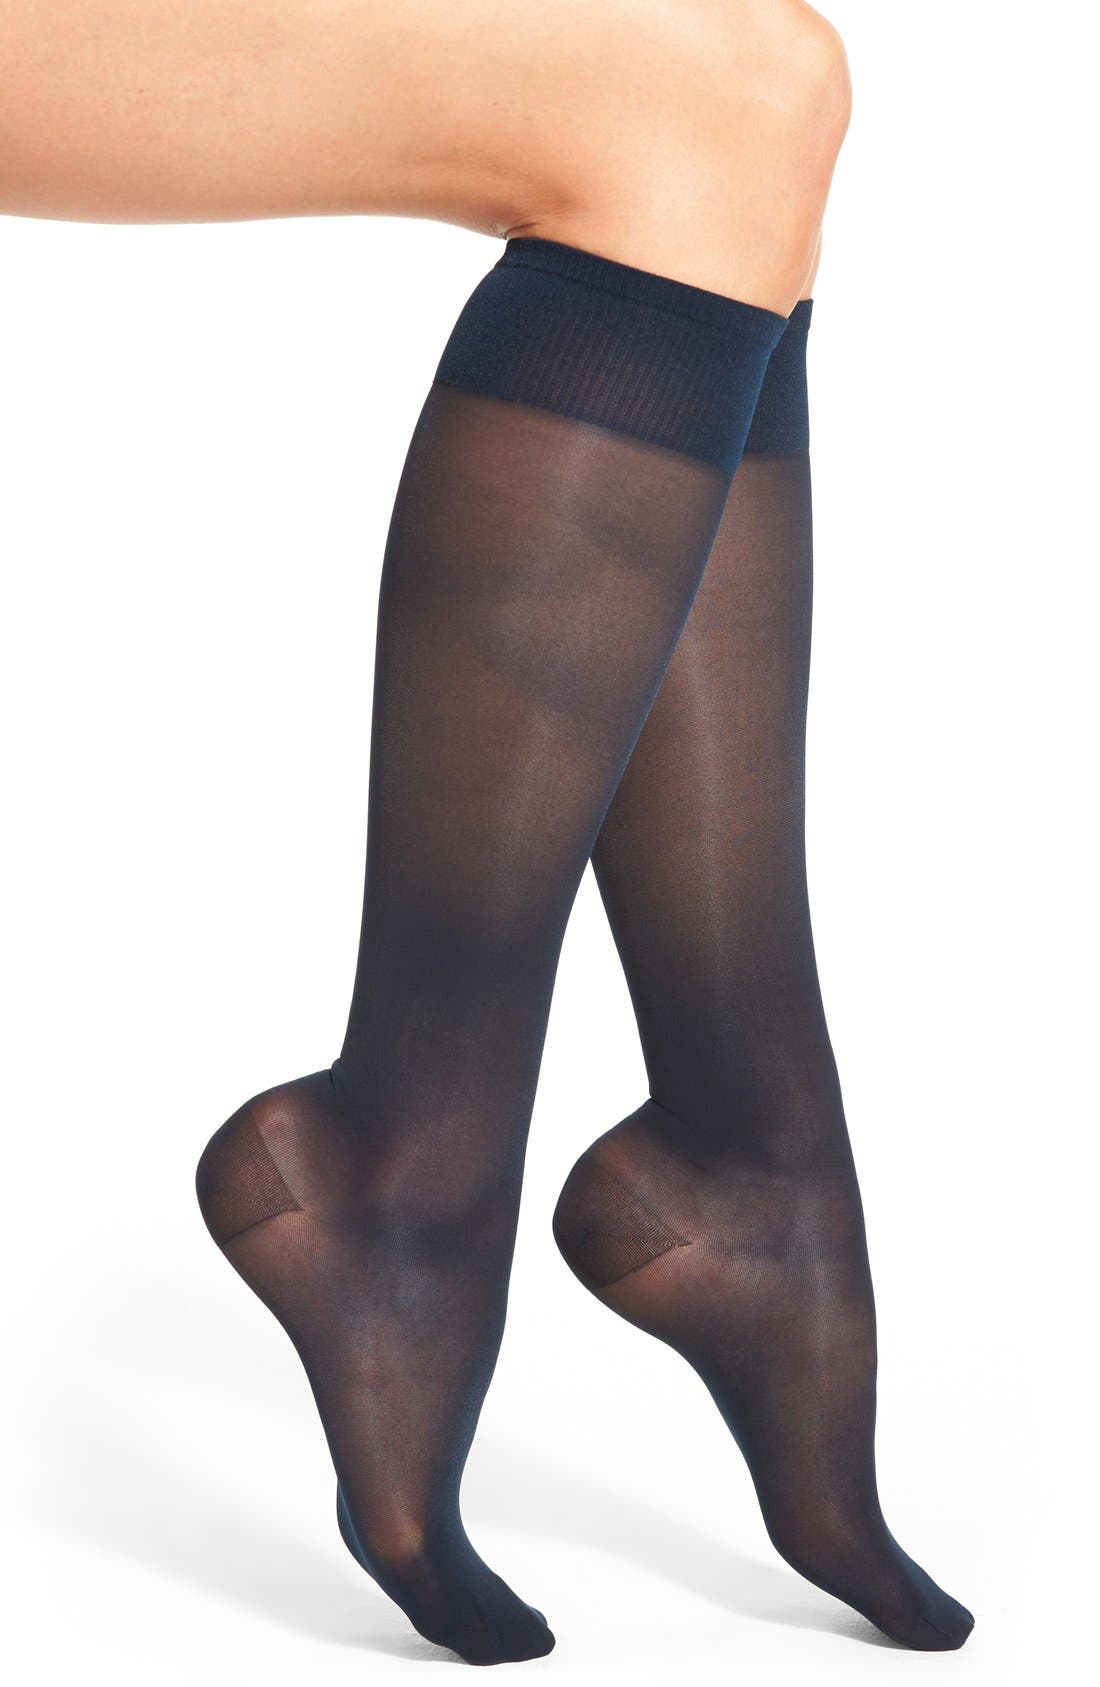 INSIGNIA by SIGVARIS Knee High Trouser Socks